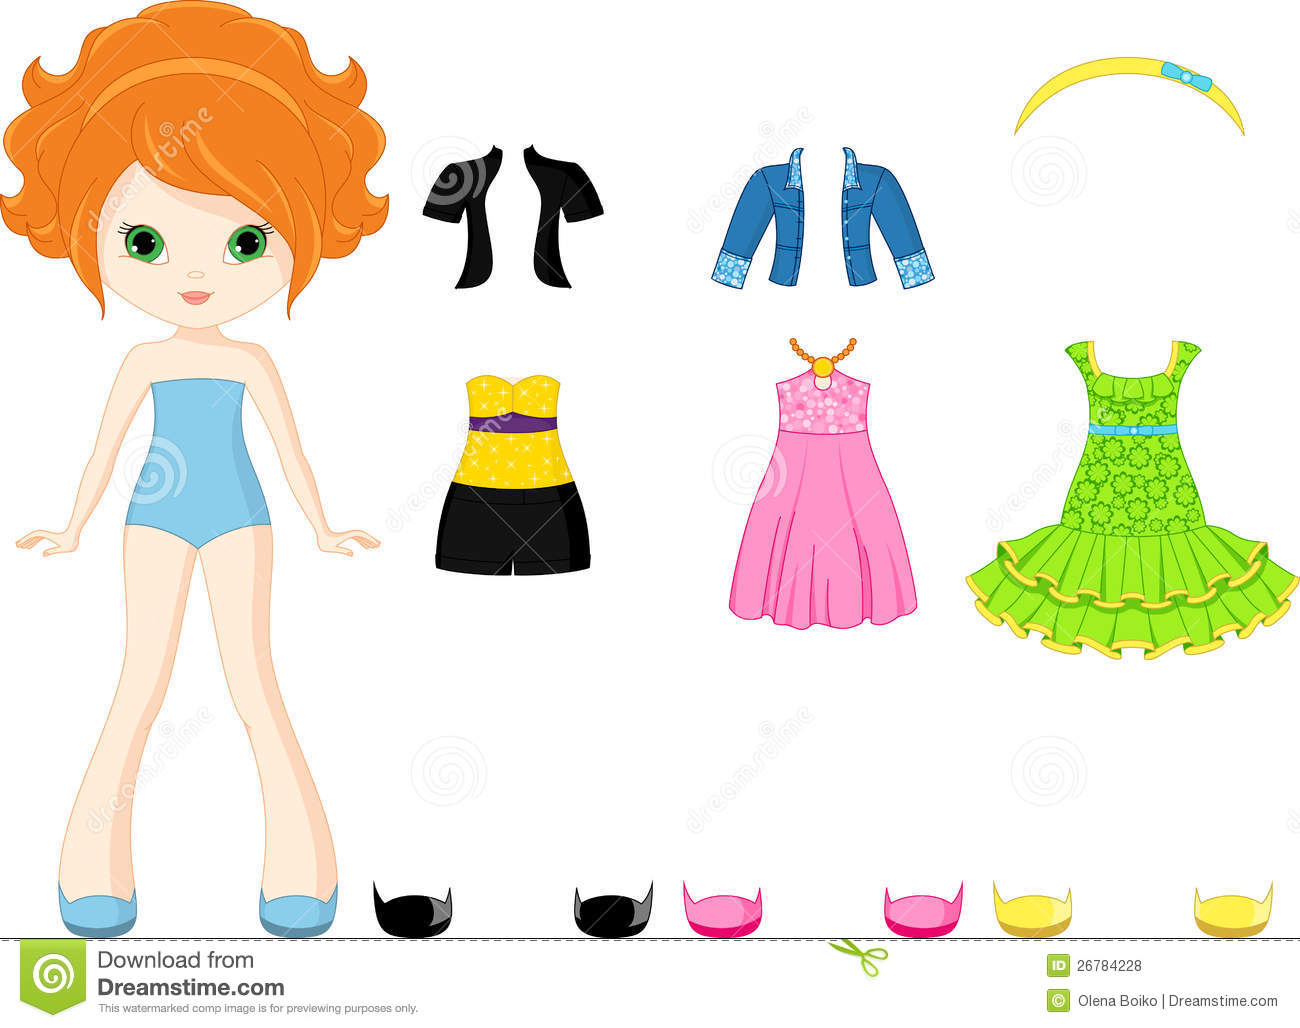 paper doll royalty free stock photos image 26784228